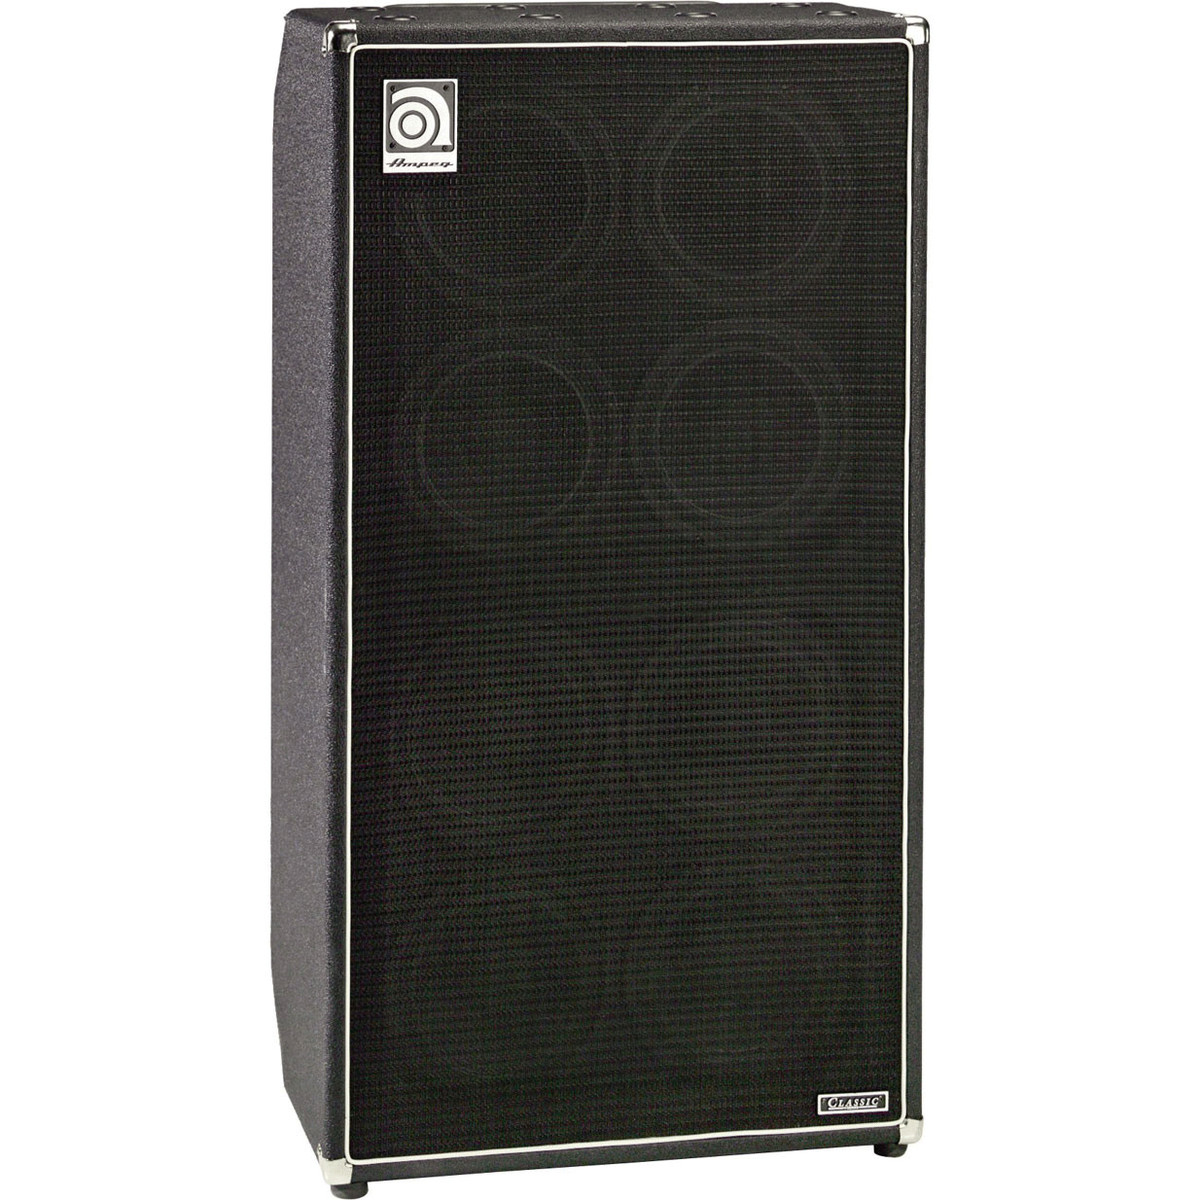 Ampeg SVT-810E 8 x 10'' Bass Speaker Cabinet, CL at Gear4music.com